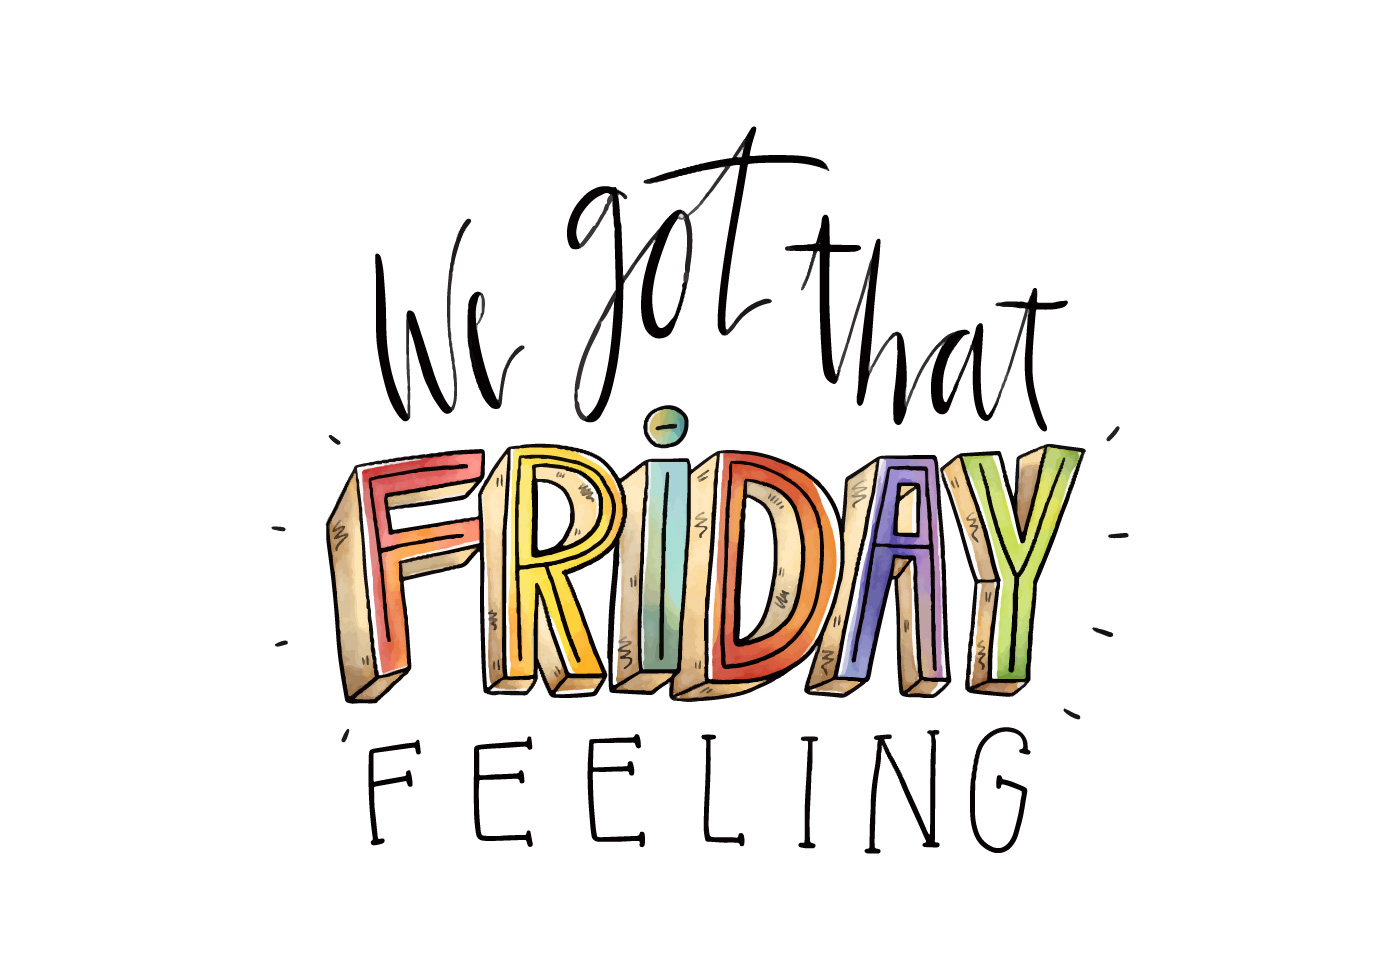 Friday Quotes: Cute And Colorful Friday Quote Watercolor Style